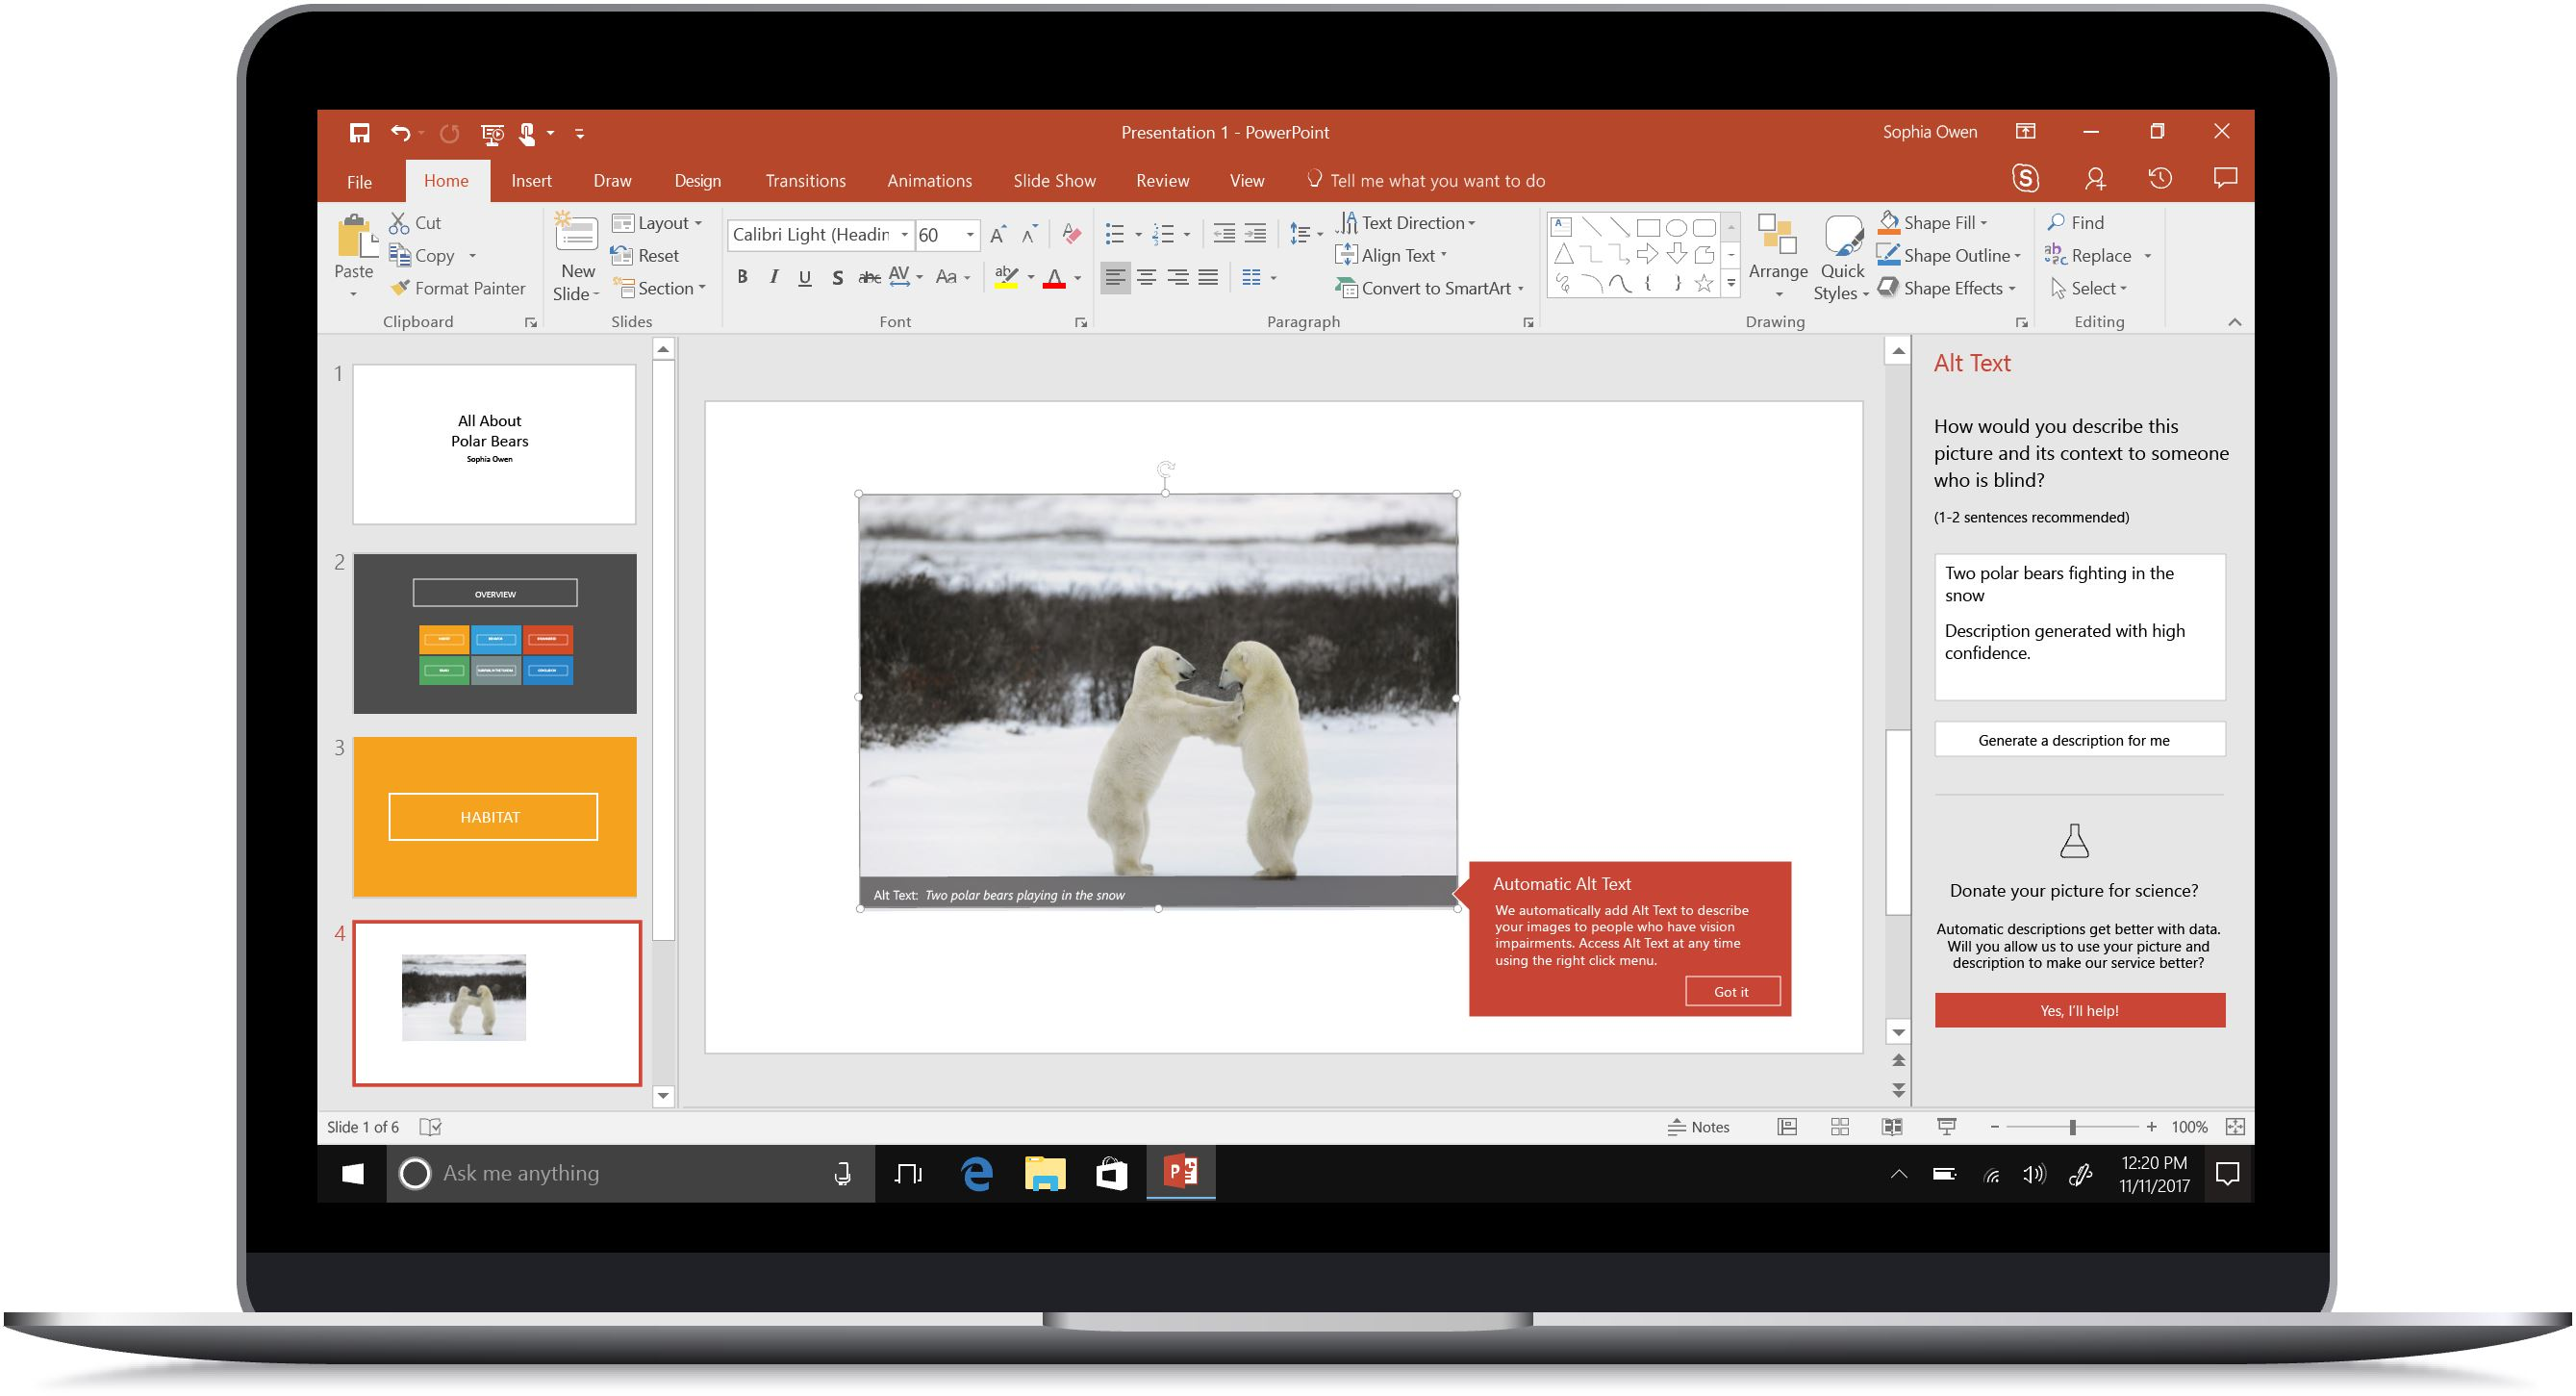 Mockup of a computer with auto alt text in PowerPoint captioning a photo of two polar bears.